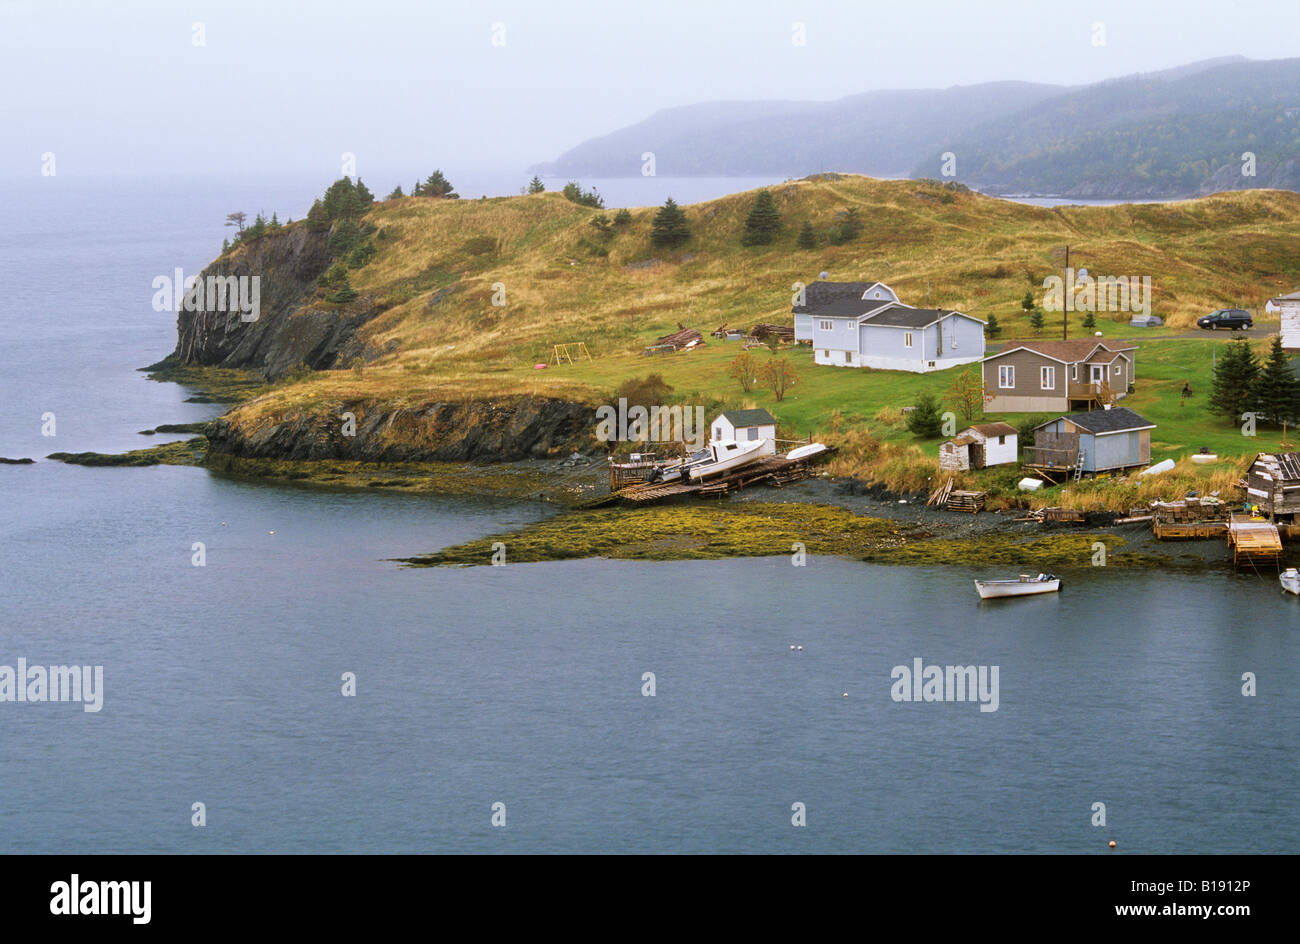 Fishing village of Harbour Mille East, Burin Peninsula, Newfoundland, Newfoundland and Labrador, Canada. Stock Photo